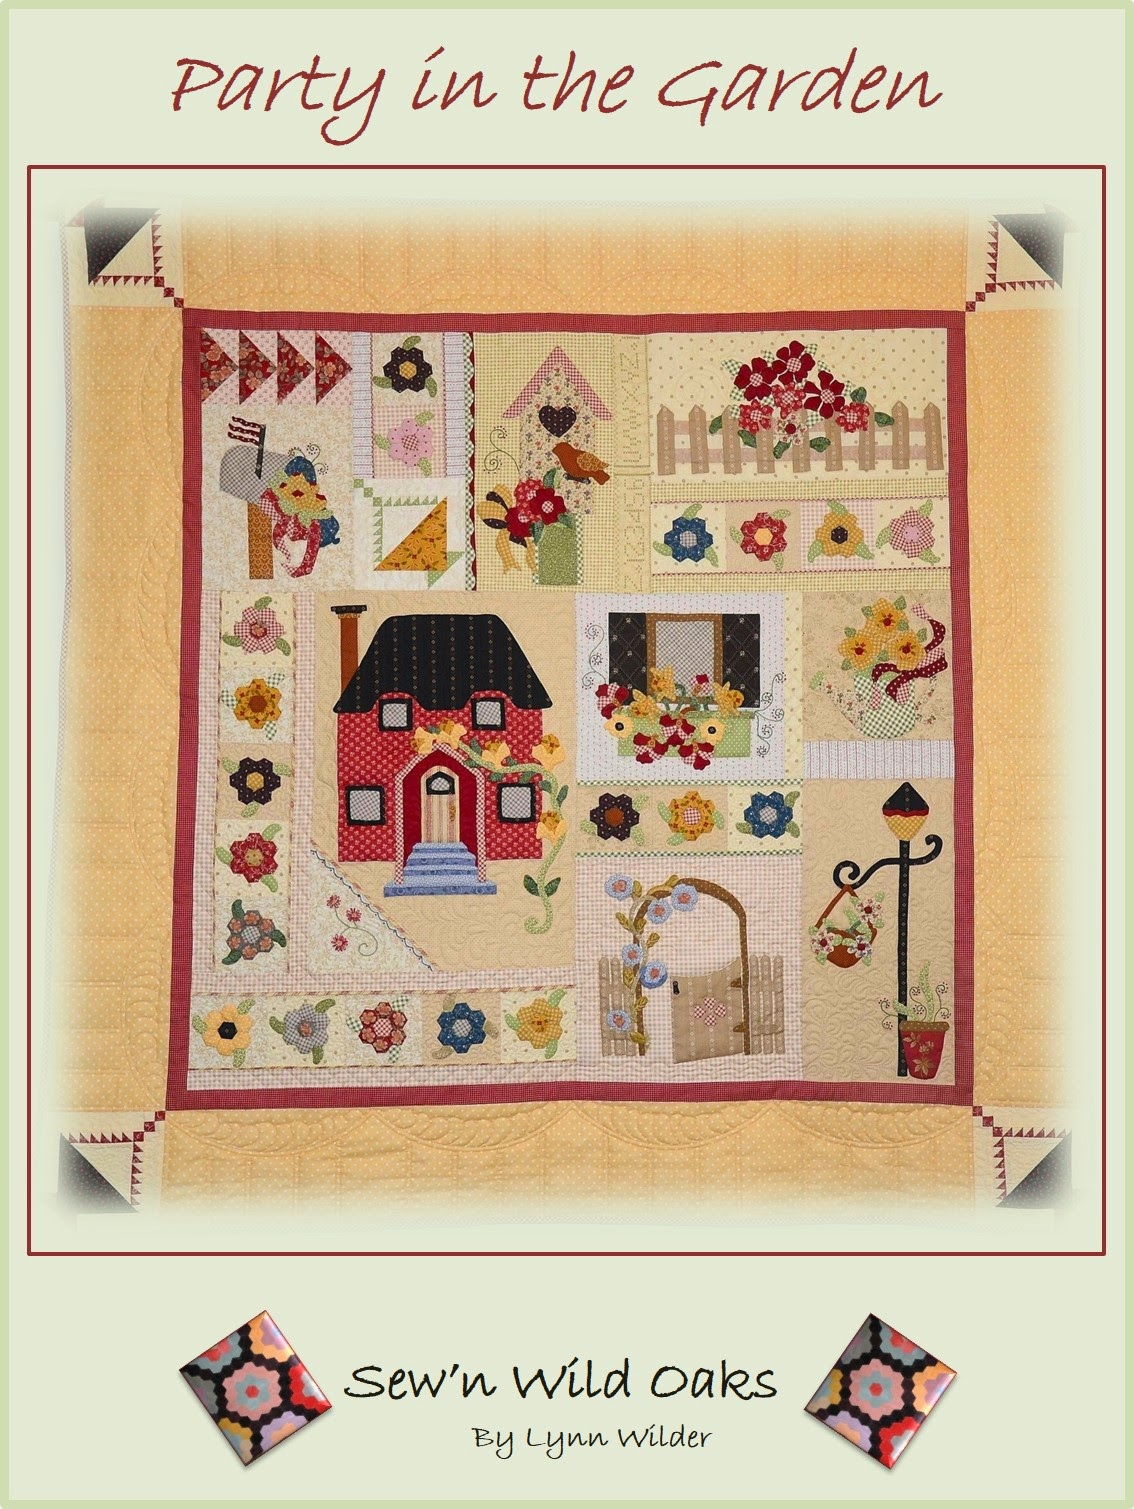 http://www.inbetweenstitches.com/shop/Patterns/p/Party-in-the-Garden-x2491543.htm